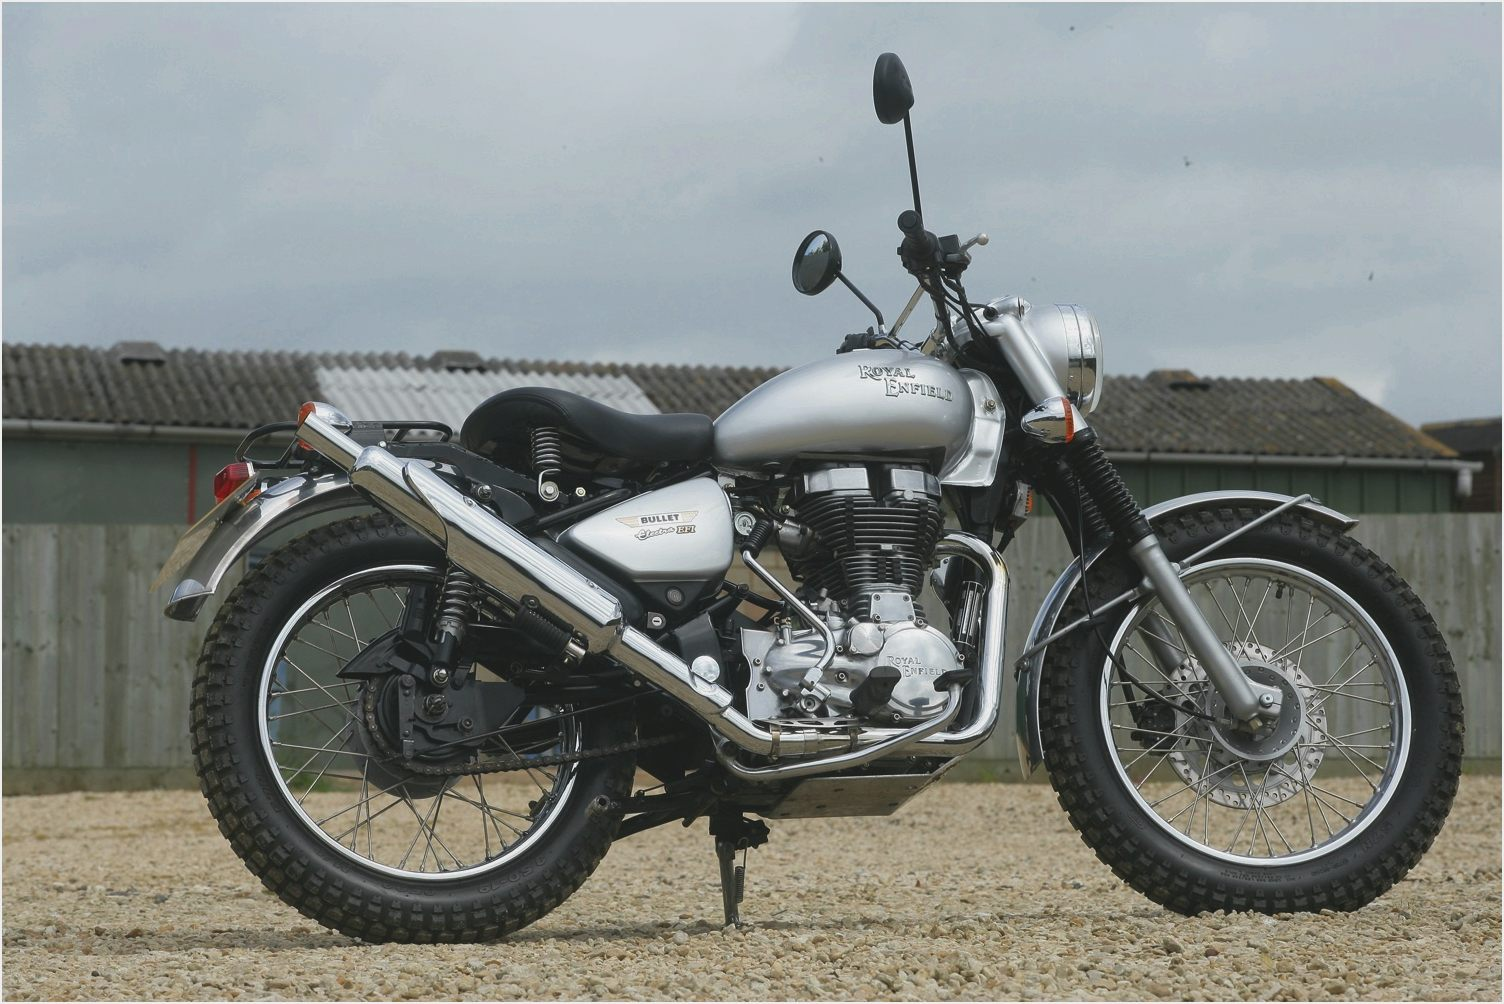 Royal Enfield Bullet 500 Trial Trail 2004 images #126581